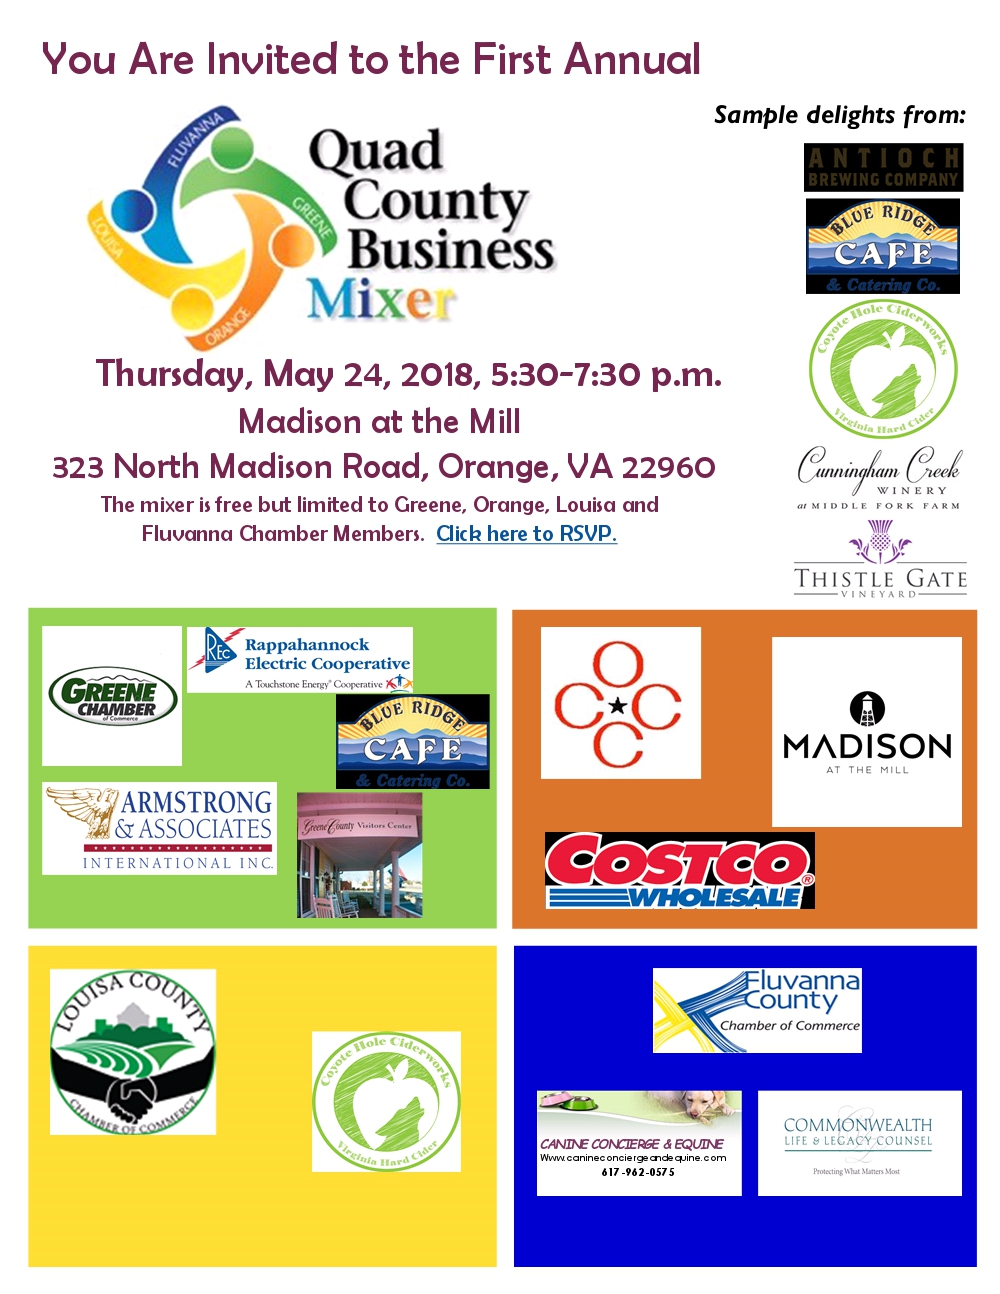 Quad-County-Mixer-Flyer-UPDATED.jpg